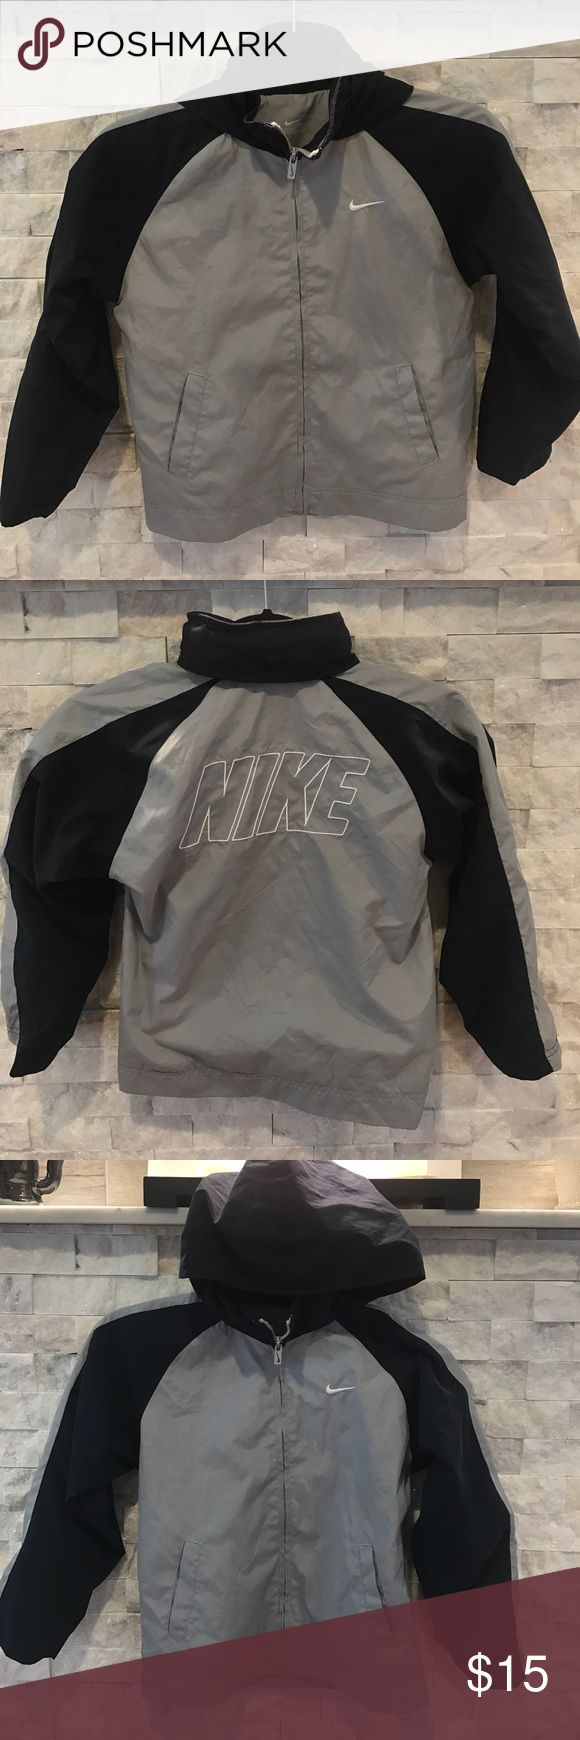 Nike Windbreaker Nike Windrunner Navy/gray colorway perfect for fall. Includes stow away hood Nike Jackets & Coats